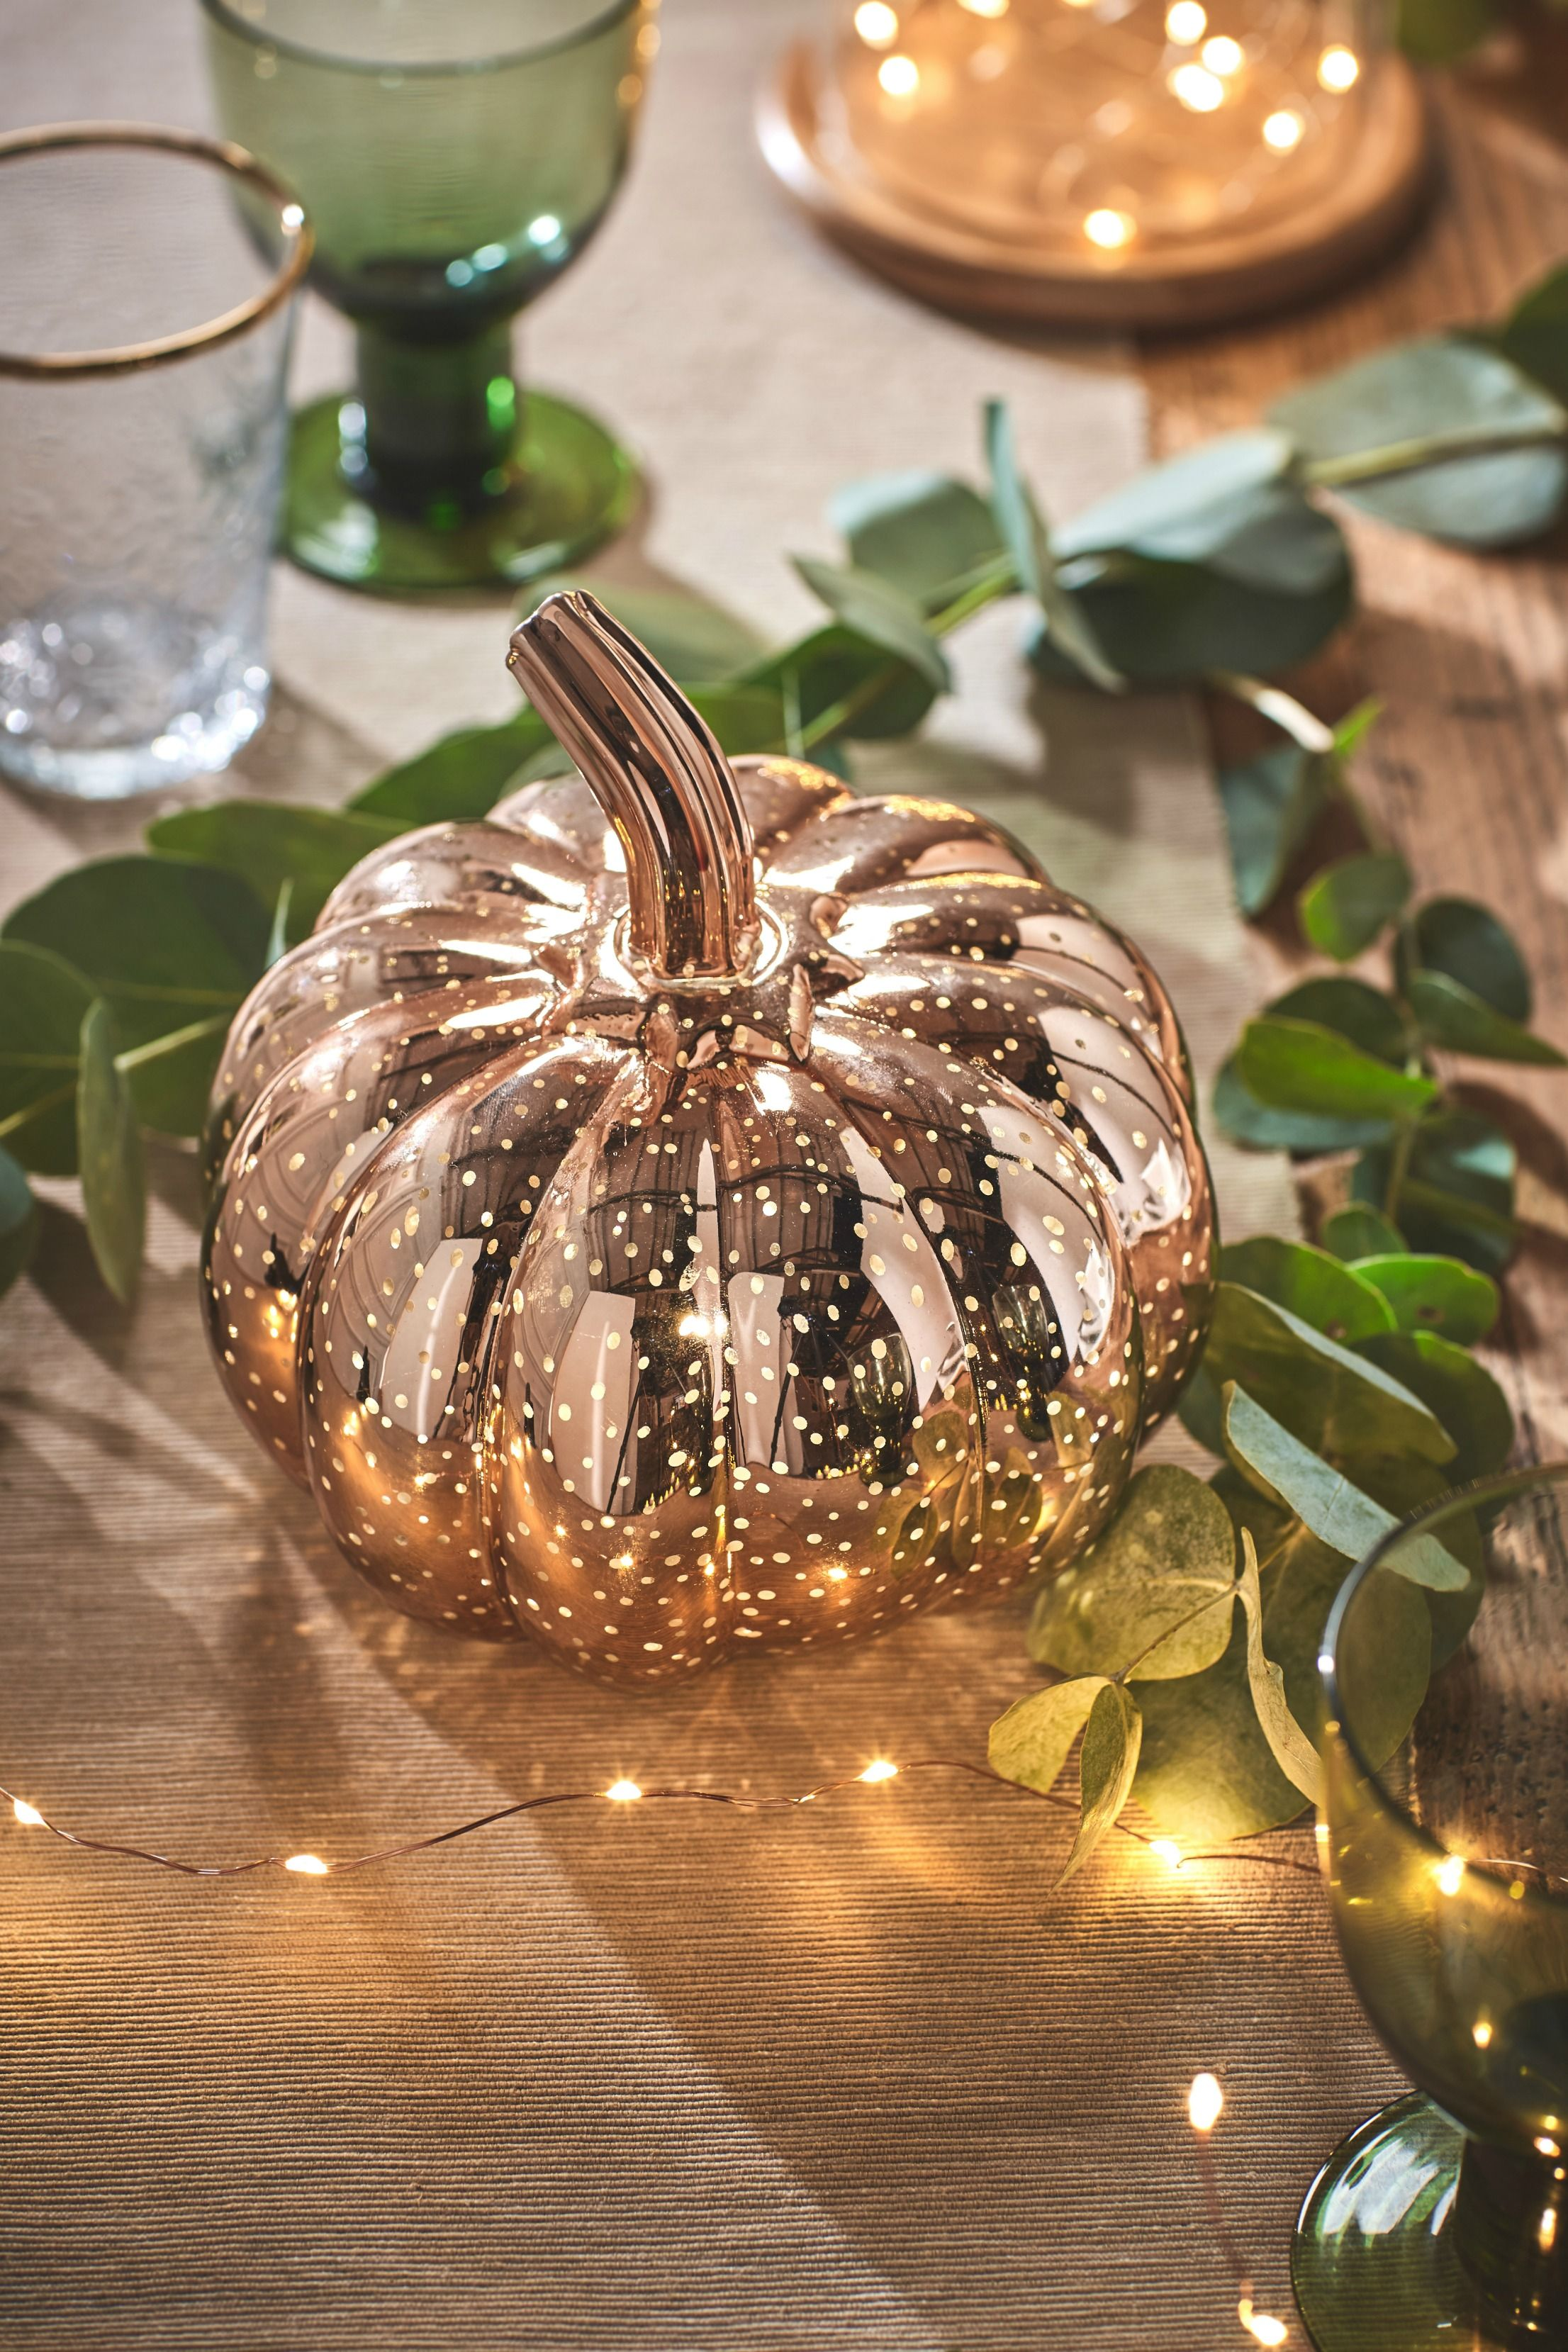 Our best selling rose gold pumpkin adds silhouettes of